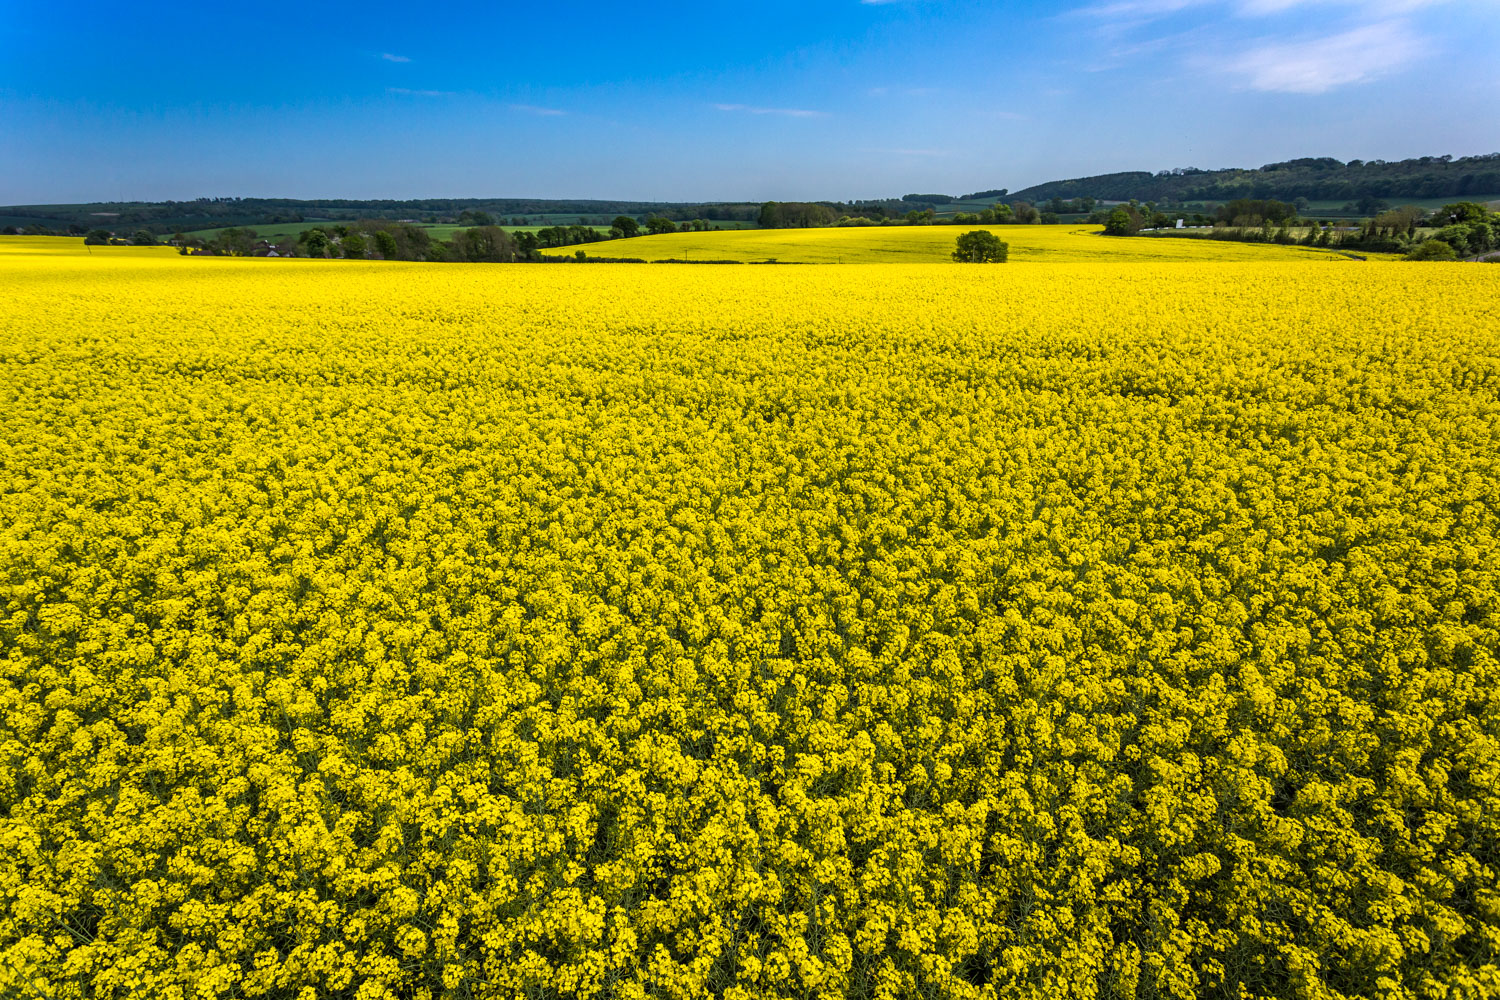 Looking down on a yellow field - great depth to this composition